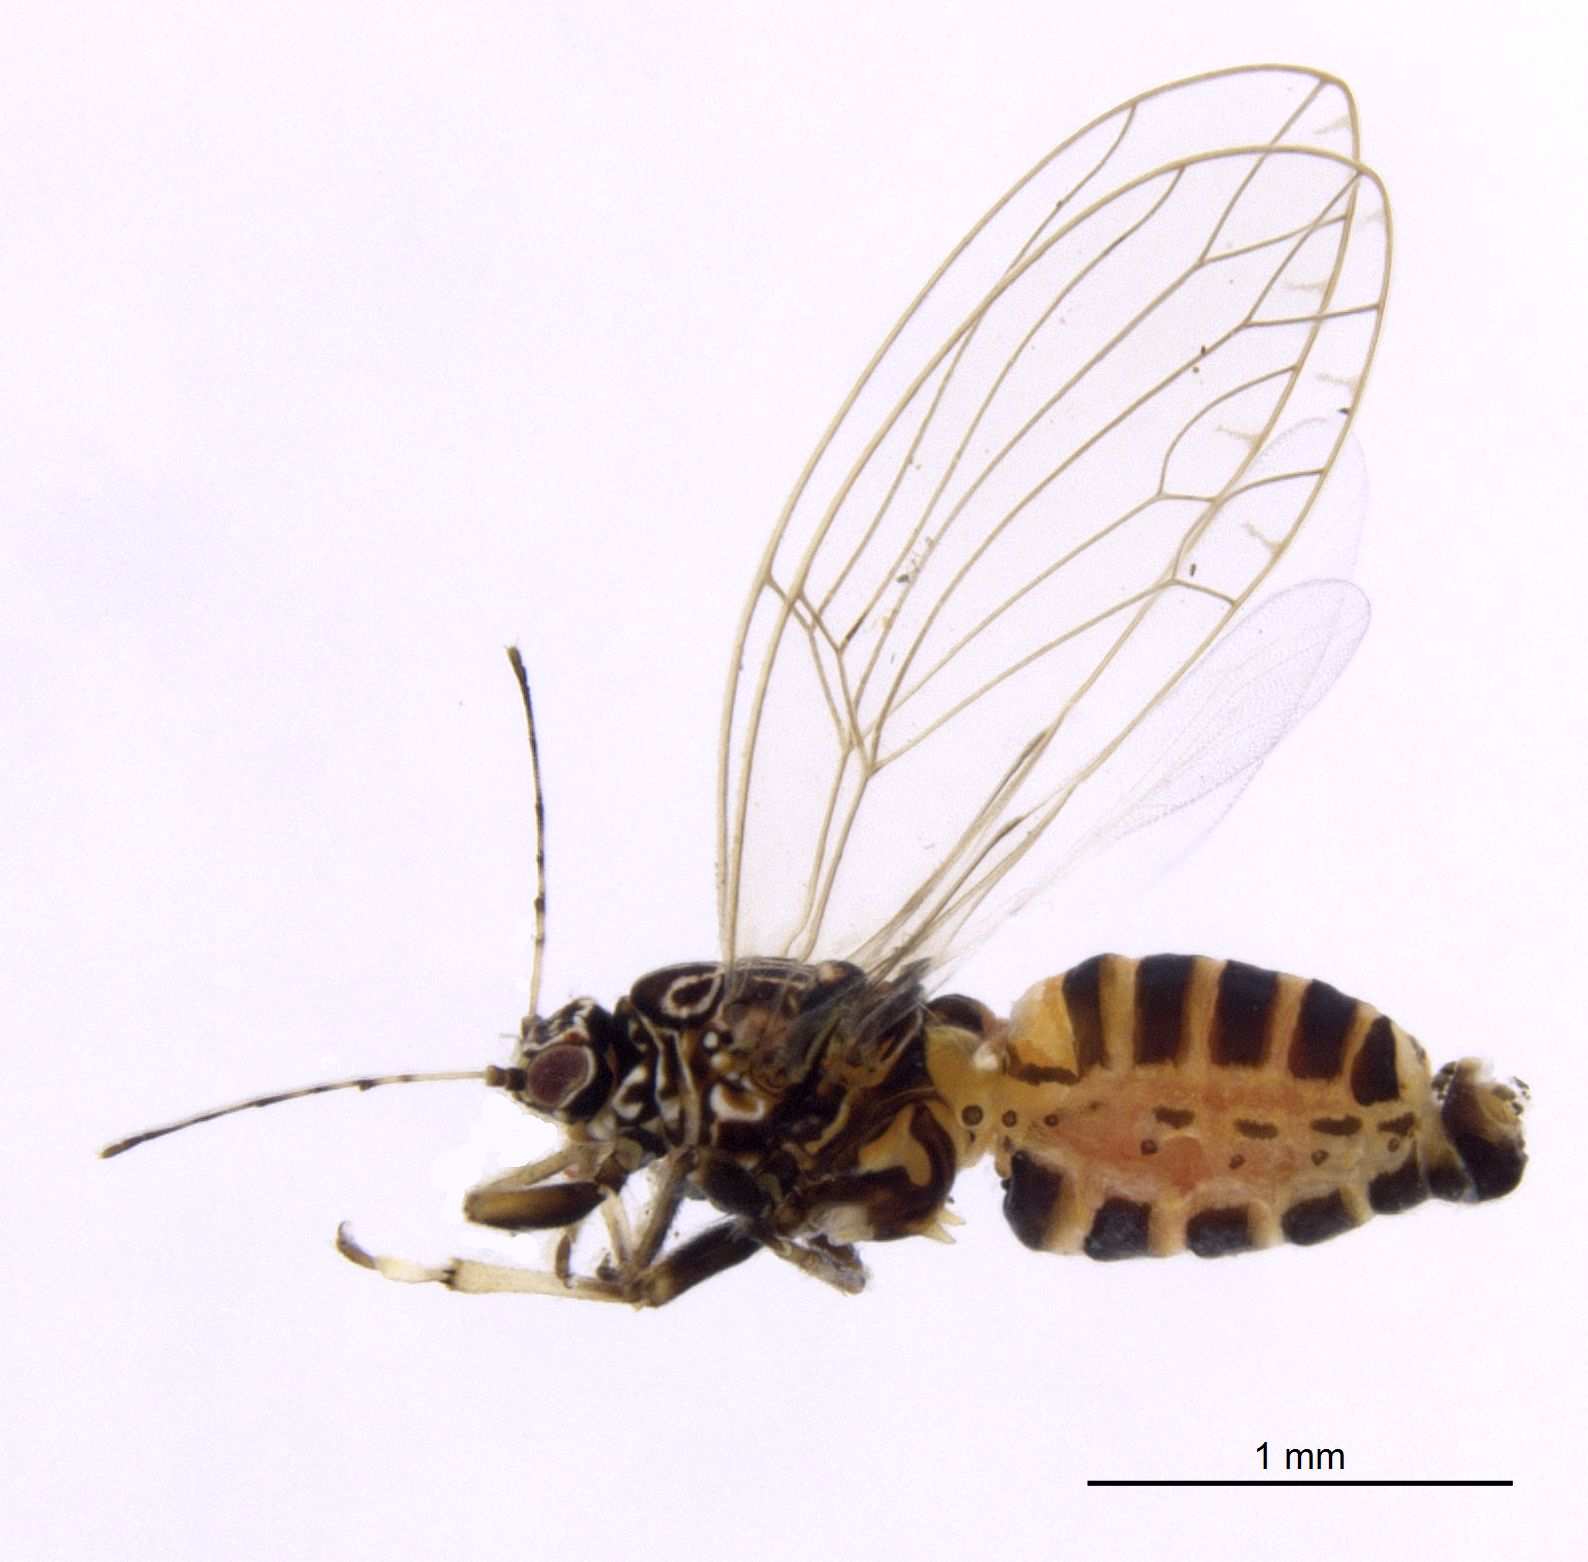 Photo of the tomato potato psyllid found that was found on Norfolk Island, showing the insect viewed from the side against a plain white background.